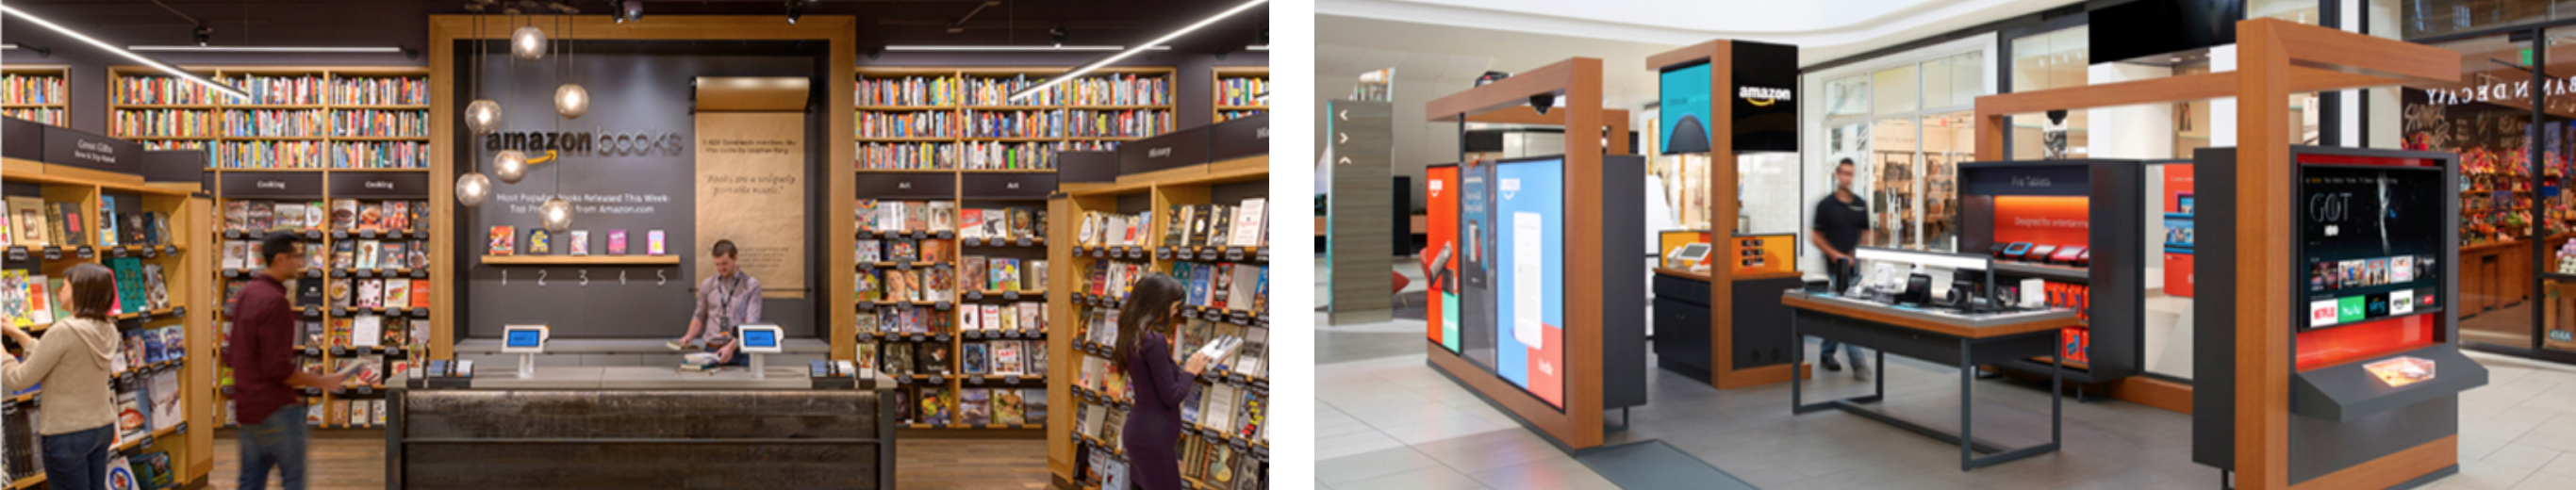 Amazon pop-up and bookstores